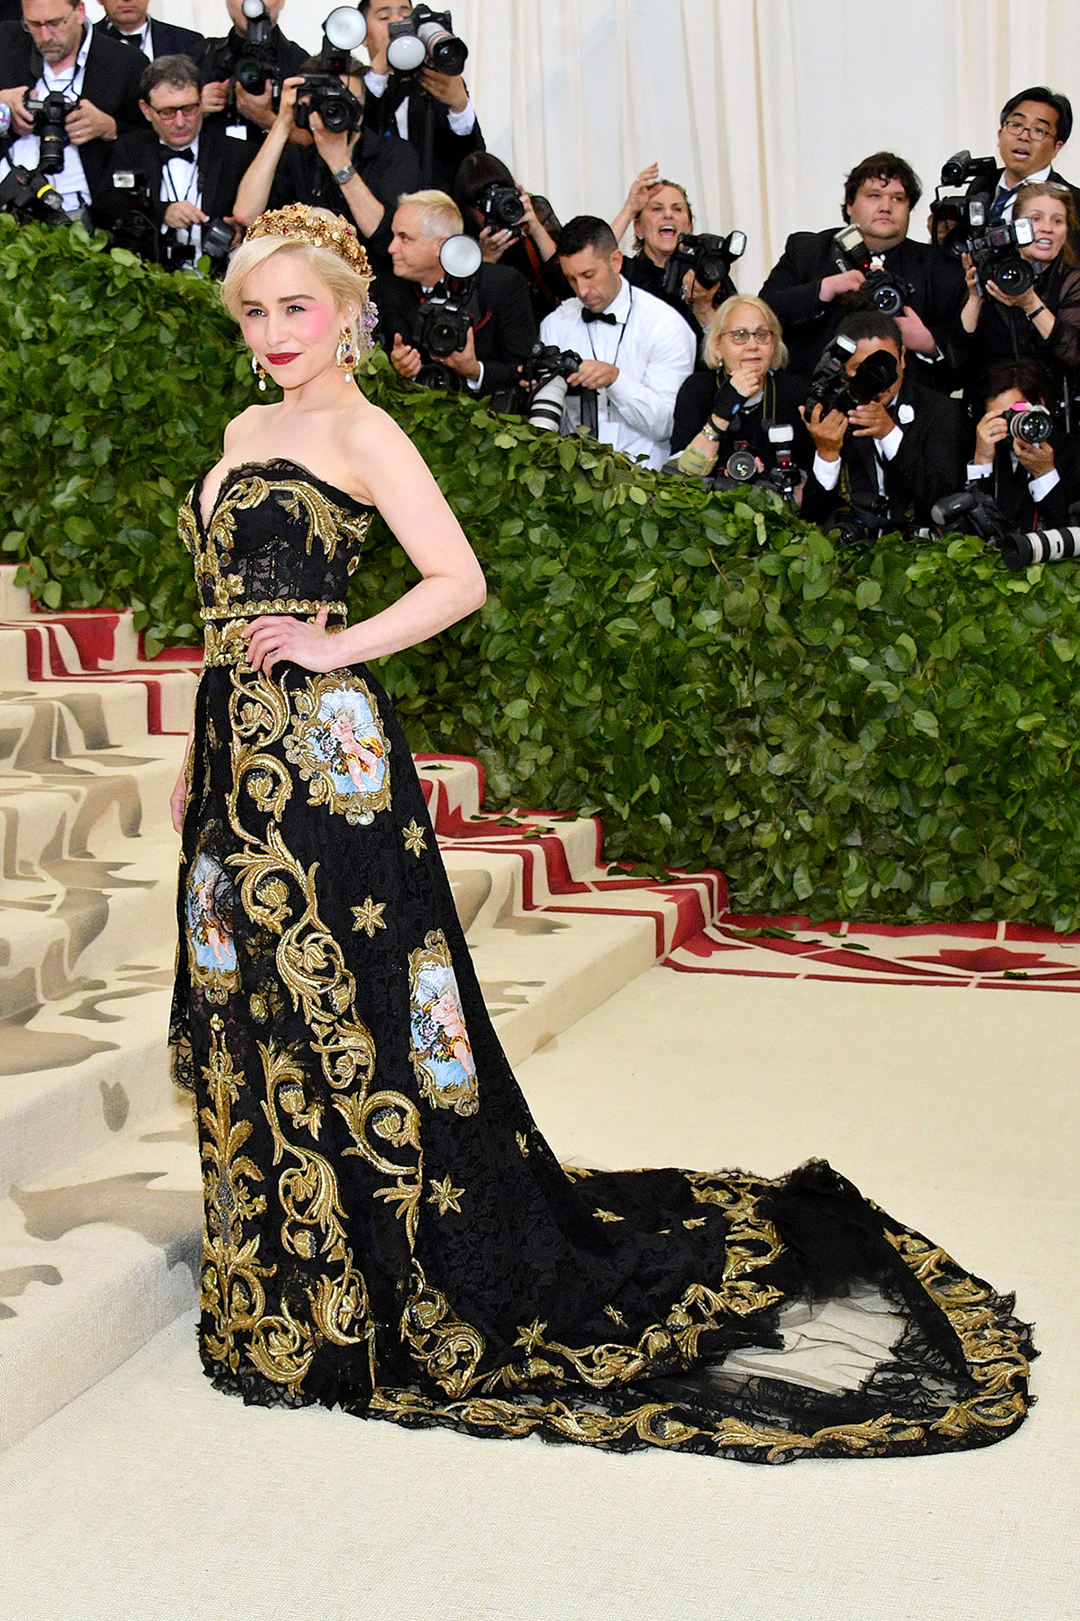 NEW YORK, NY - MAY 07: Emilia Clarke attends the Heavenly Bodies: Fashion & The Catholic Imagination Costume Institute Gala at The Metropolitan Museum of Art on May 7, 2018 in New York City. (Photo by Dia Dipasupil/WireImage)